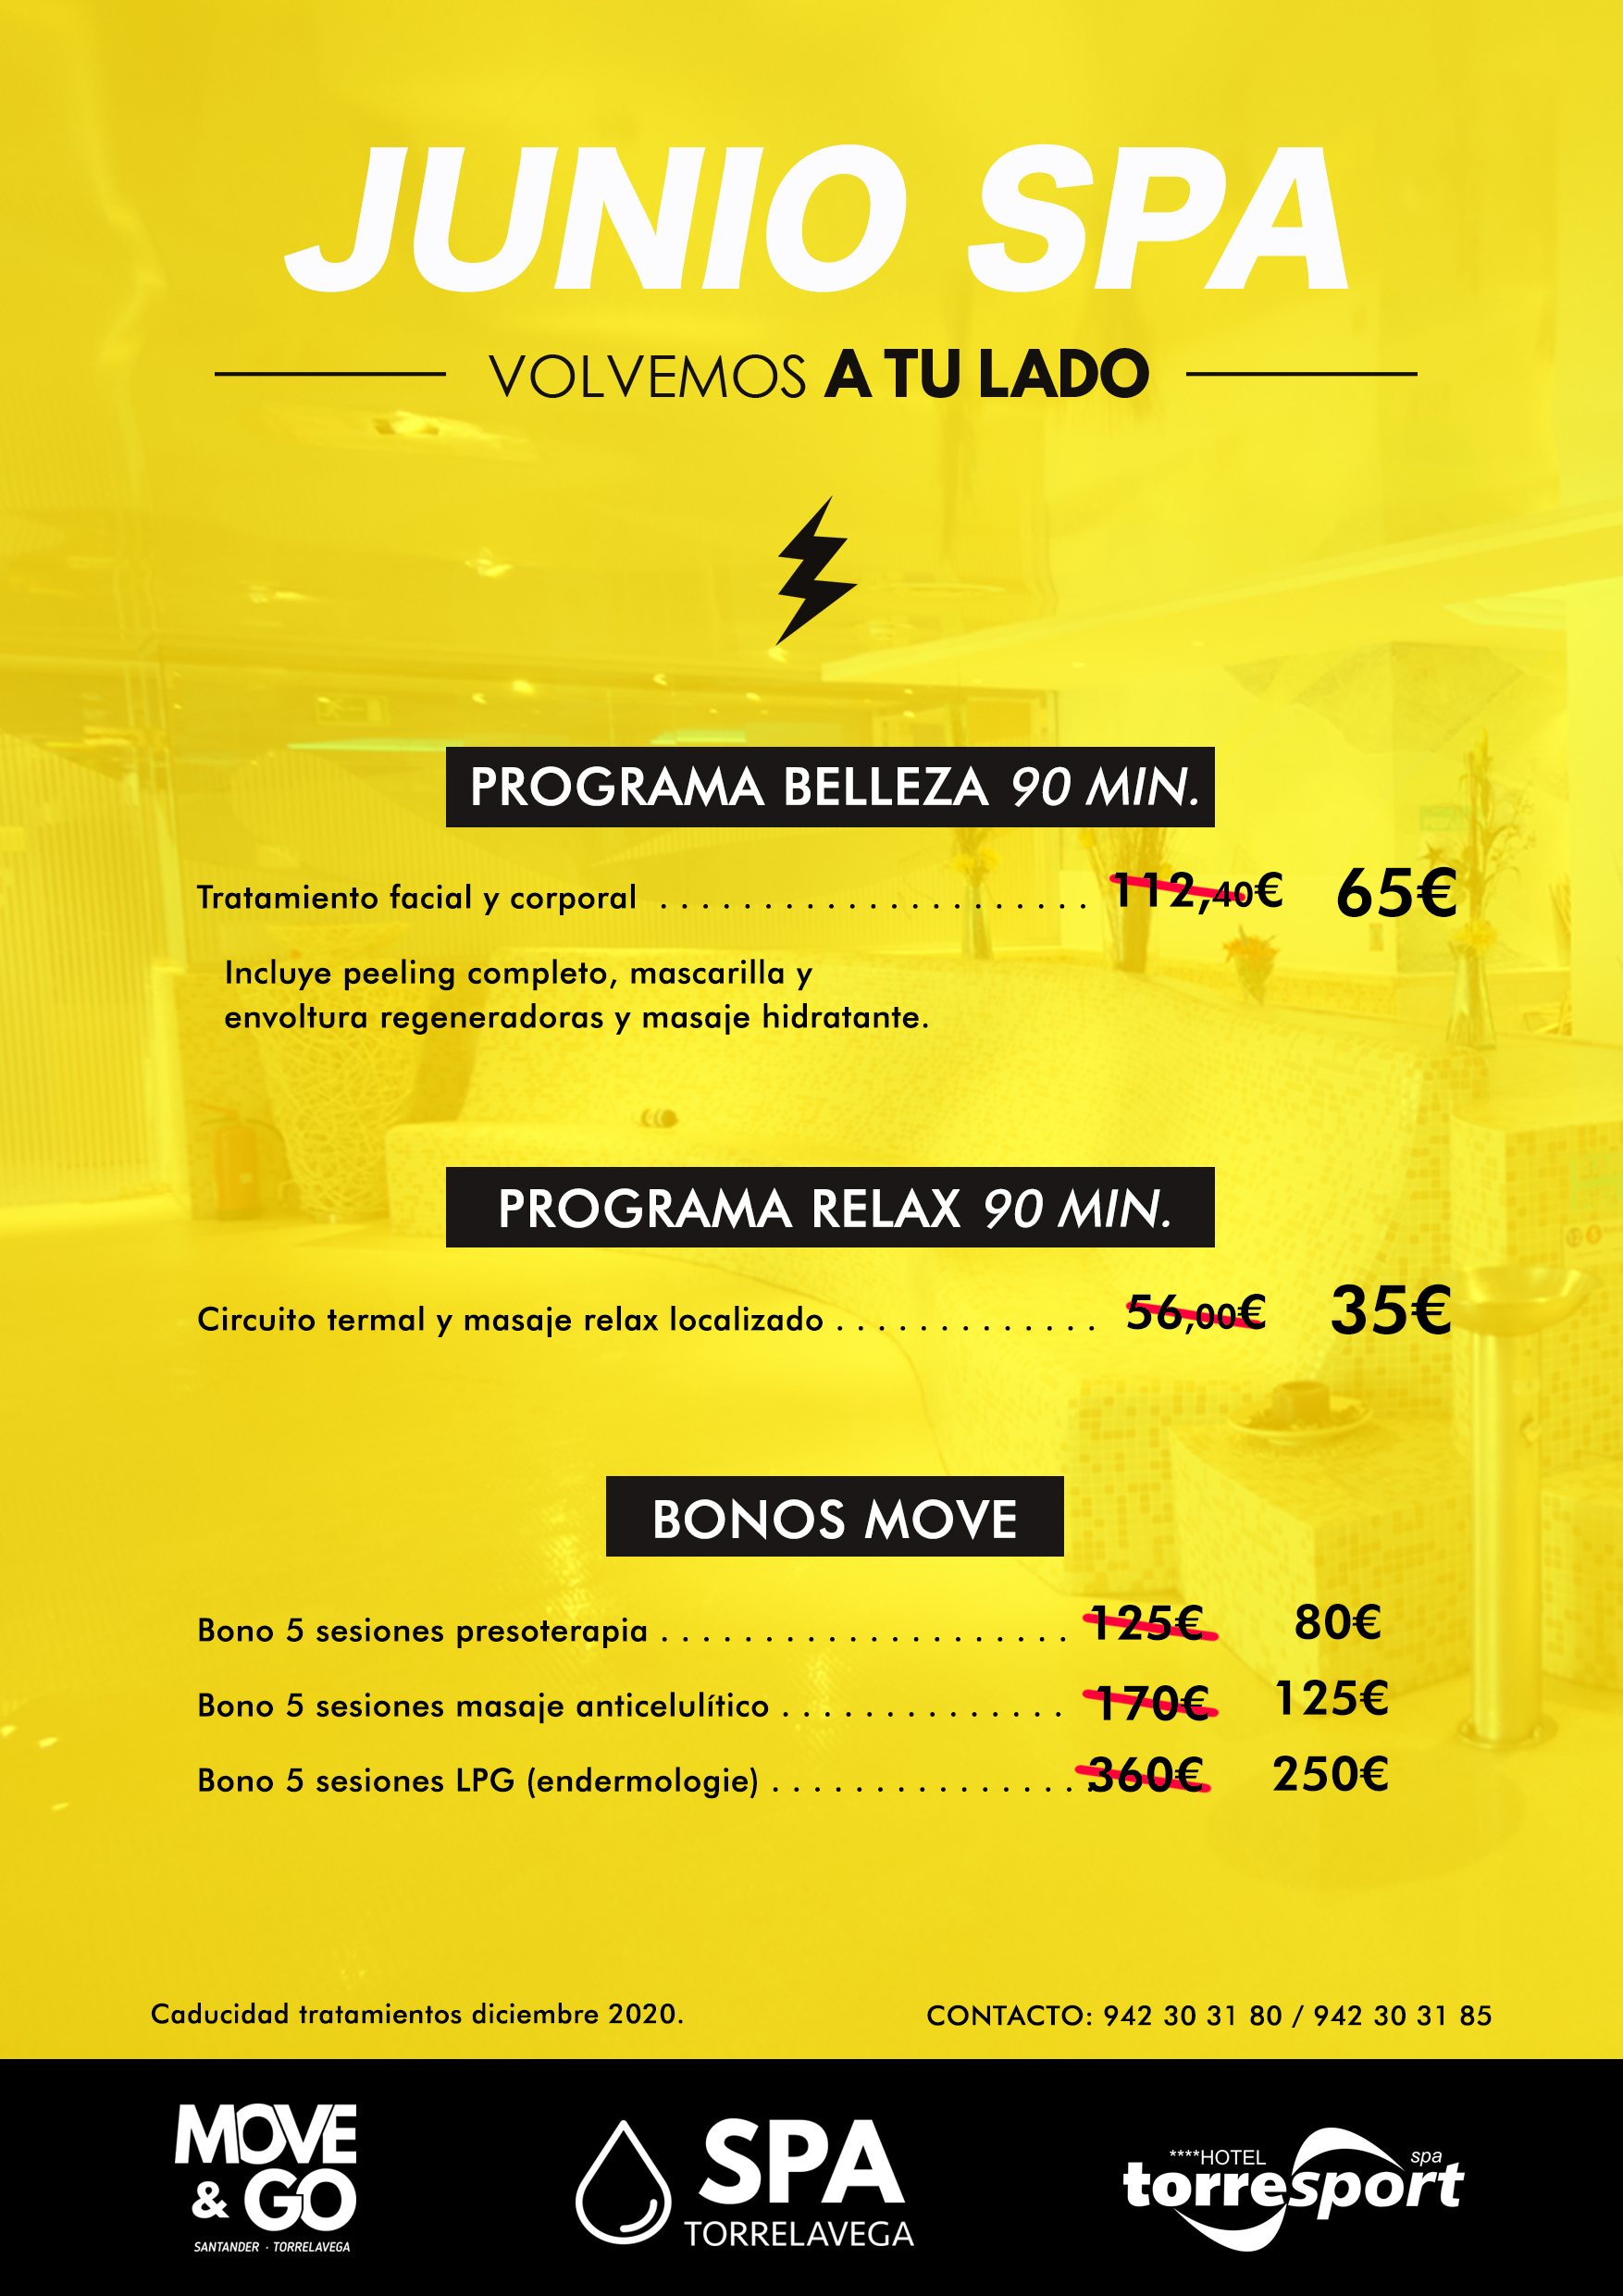 PROMOS-SPA-JUNIO-TORRE